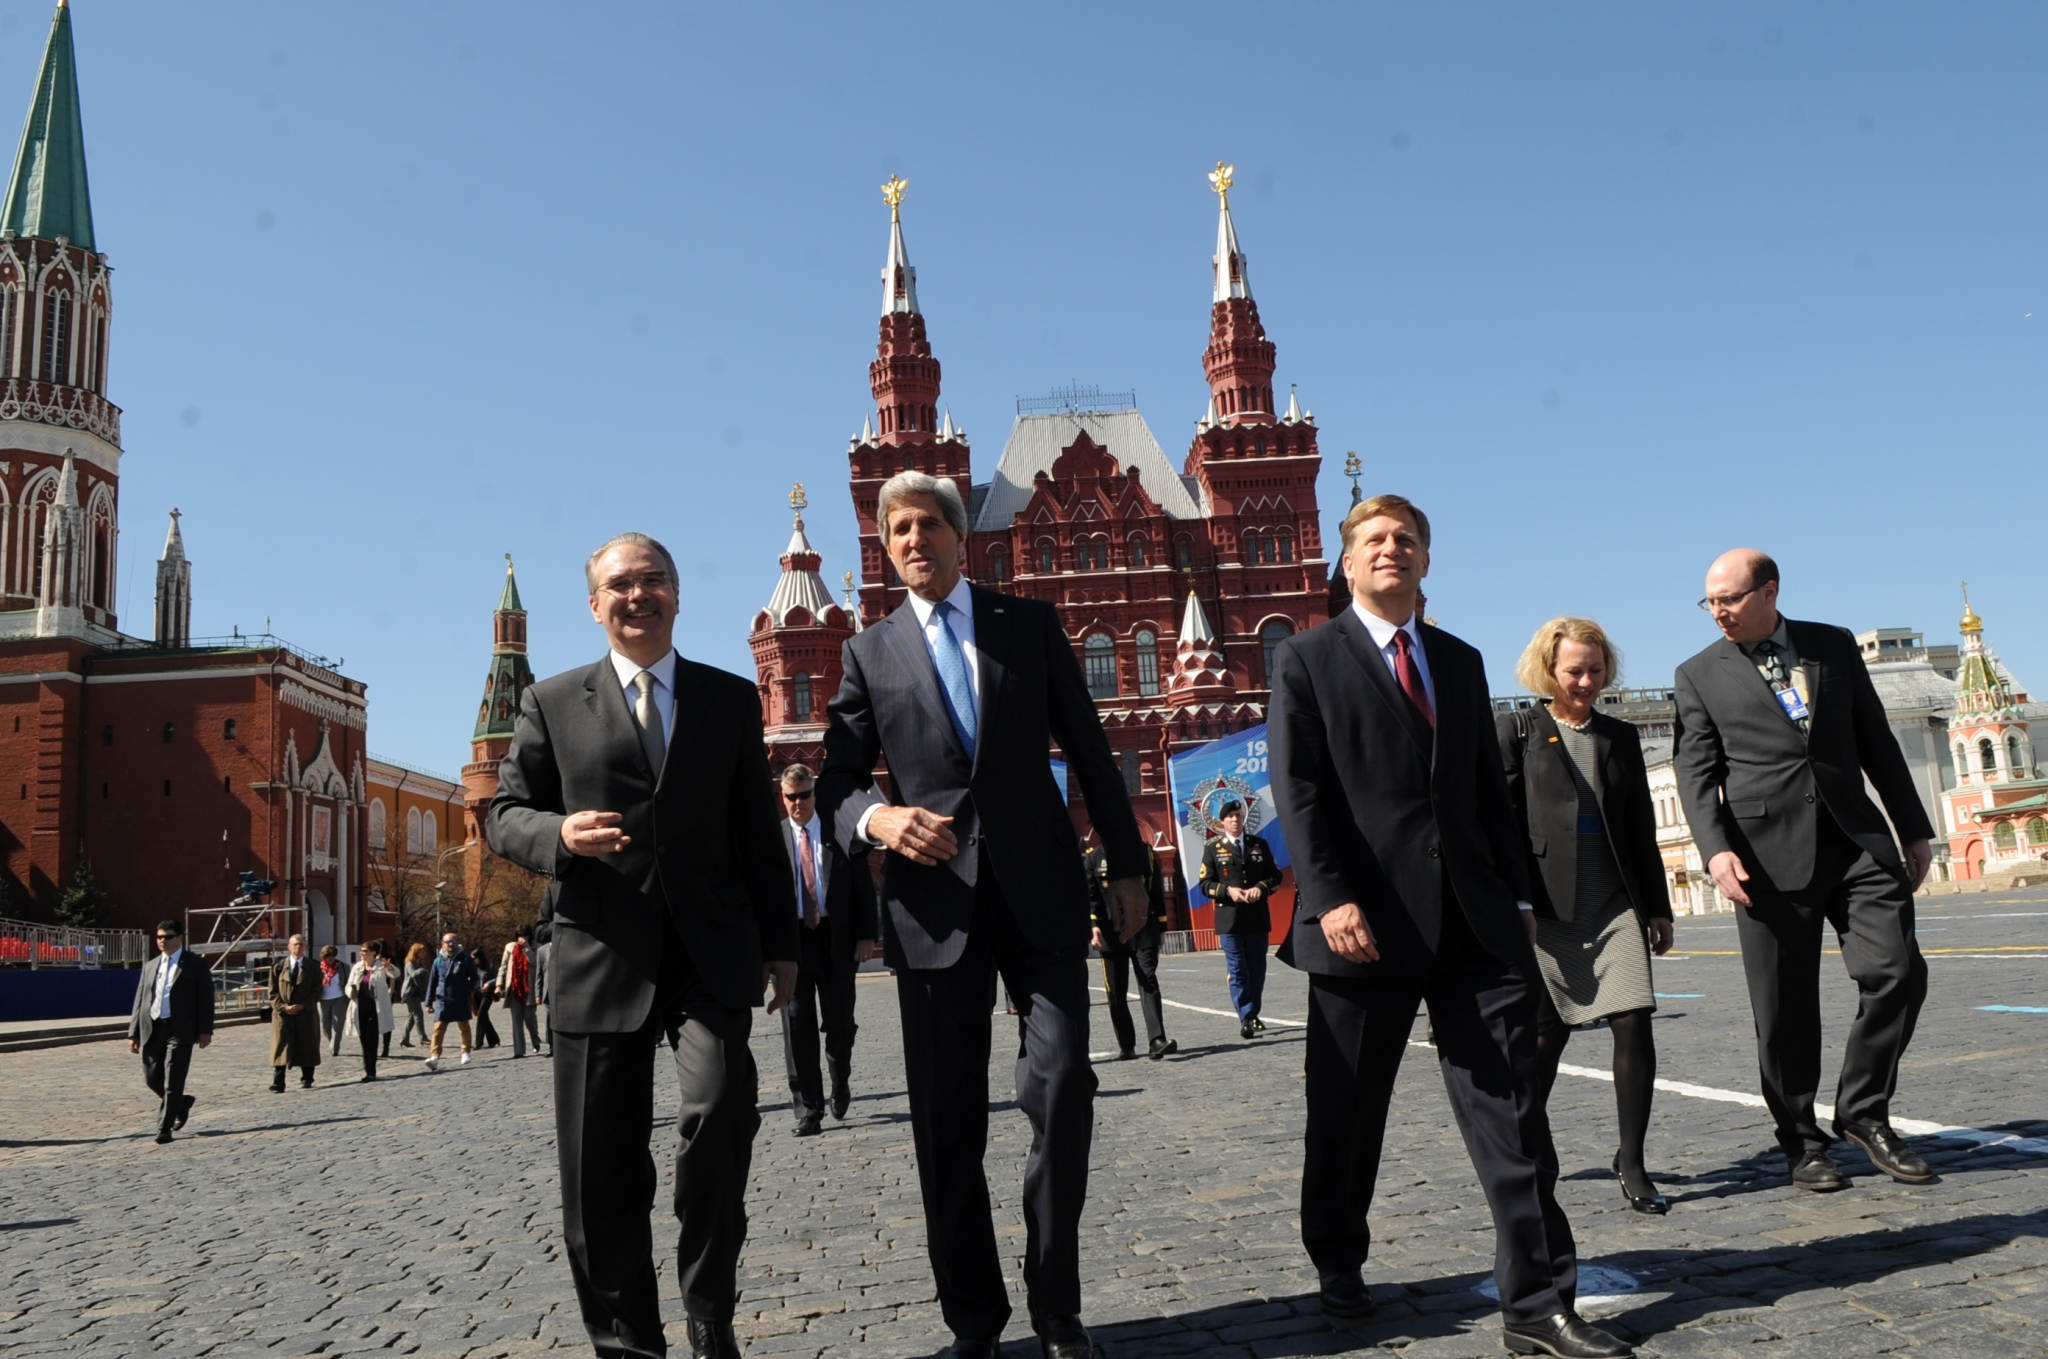 U.S. Secretary of State John Kerry, accompanied by U.S Ambassador to Russia Michael McFaul, right, and Russian Chief of Protocol Yuriy Filatov, left, tours Red Square during his visit to Moscow, Russia, on May 7, 2013. [State Department photo/ Public Domain]